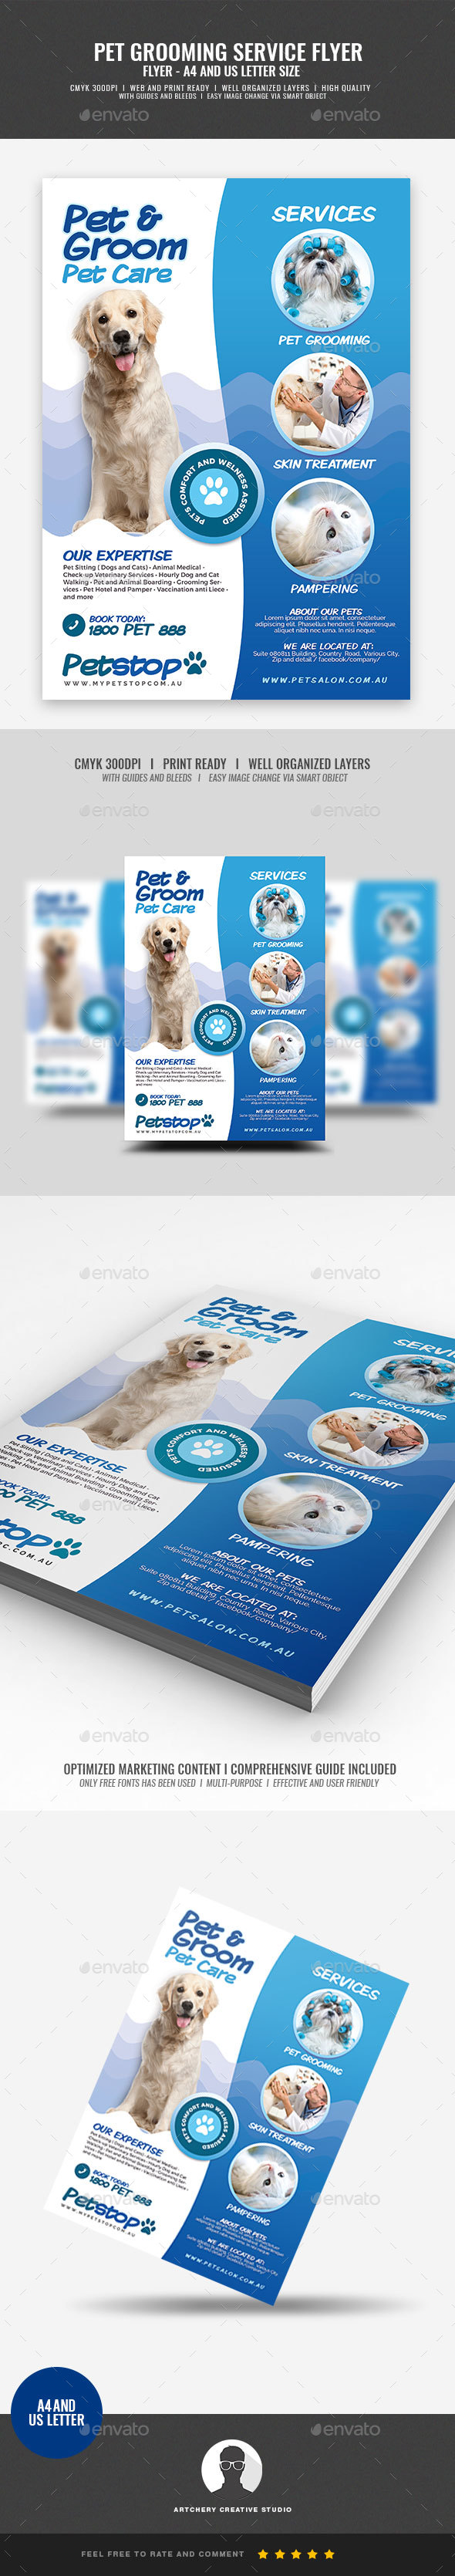 Pet Care and Grooming Services Flyer - Corporate Flyers